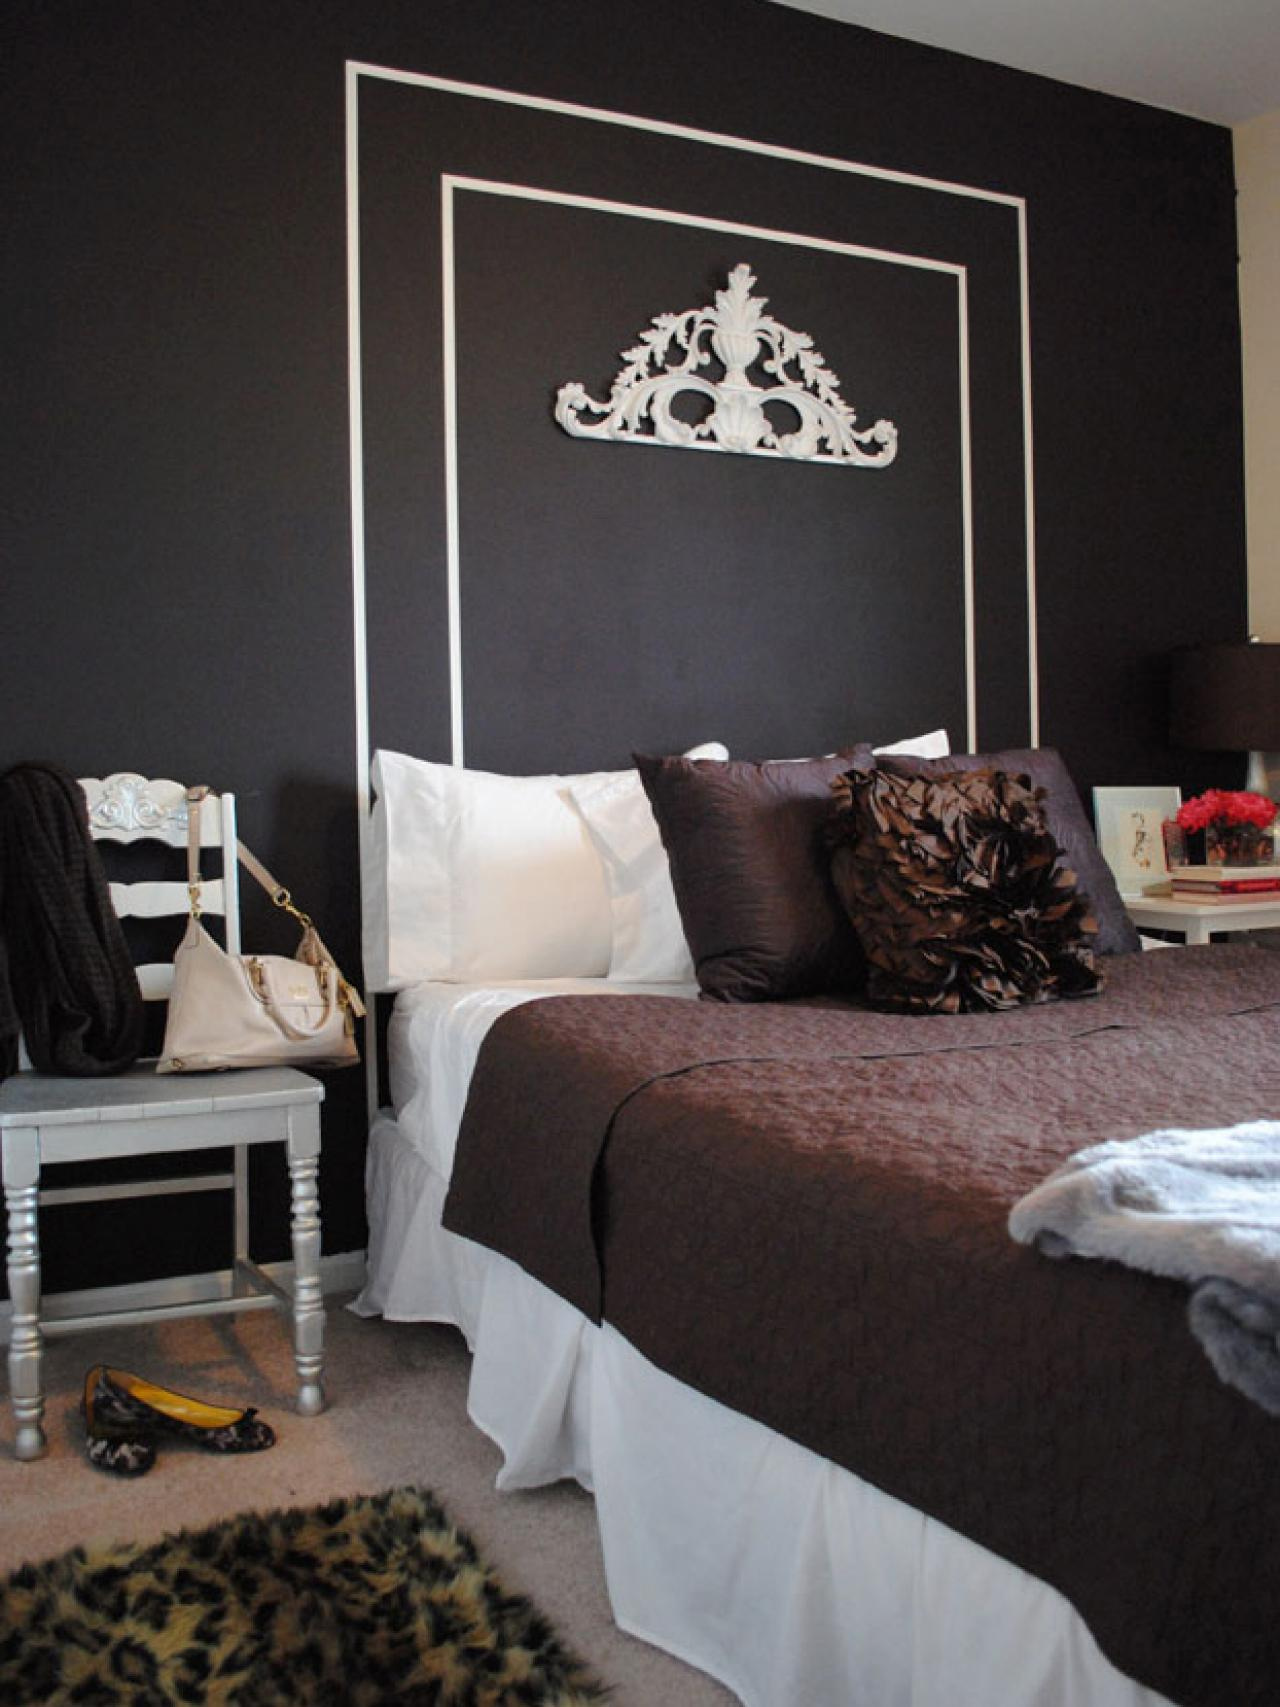 Large Chalkboard Headboard Design With